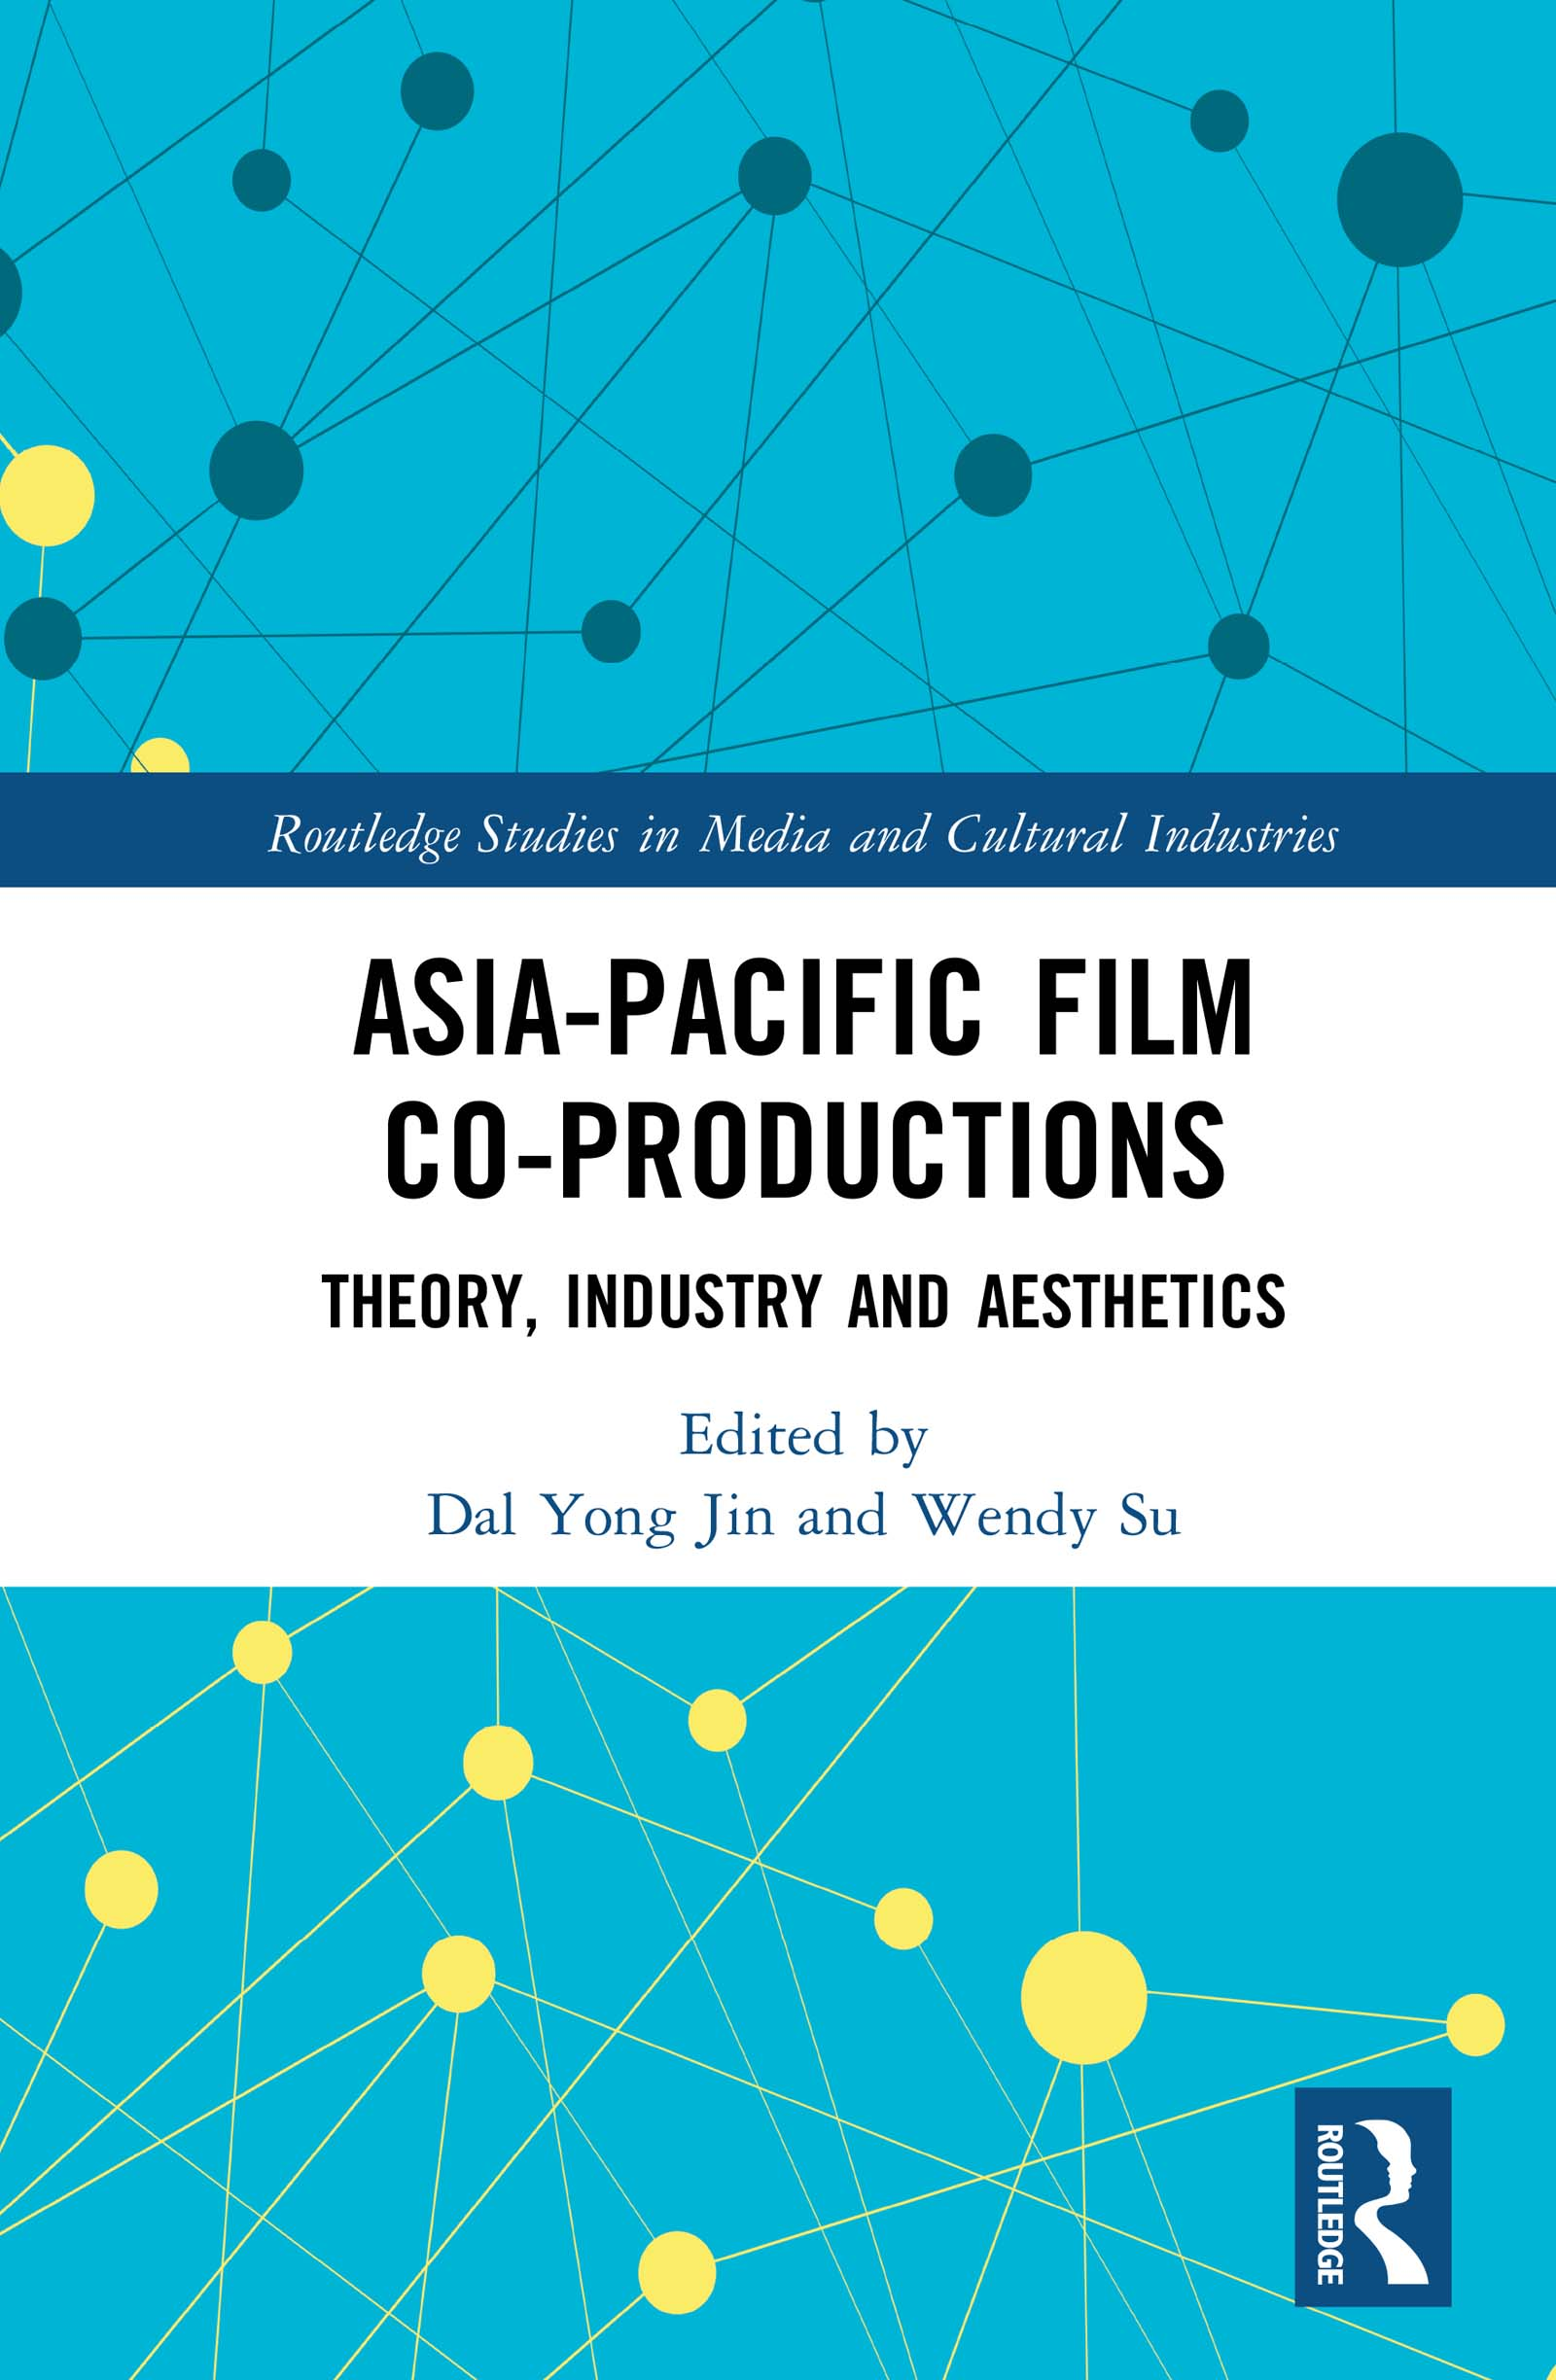 Asia-Pacific Film Co-productions: Theory, Industry and Aesthetics book cover